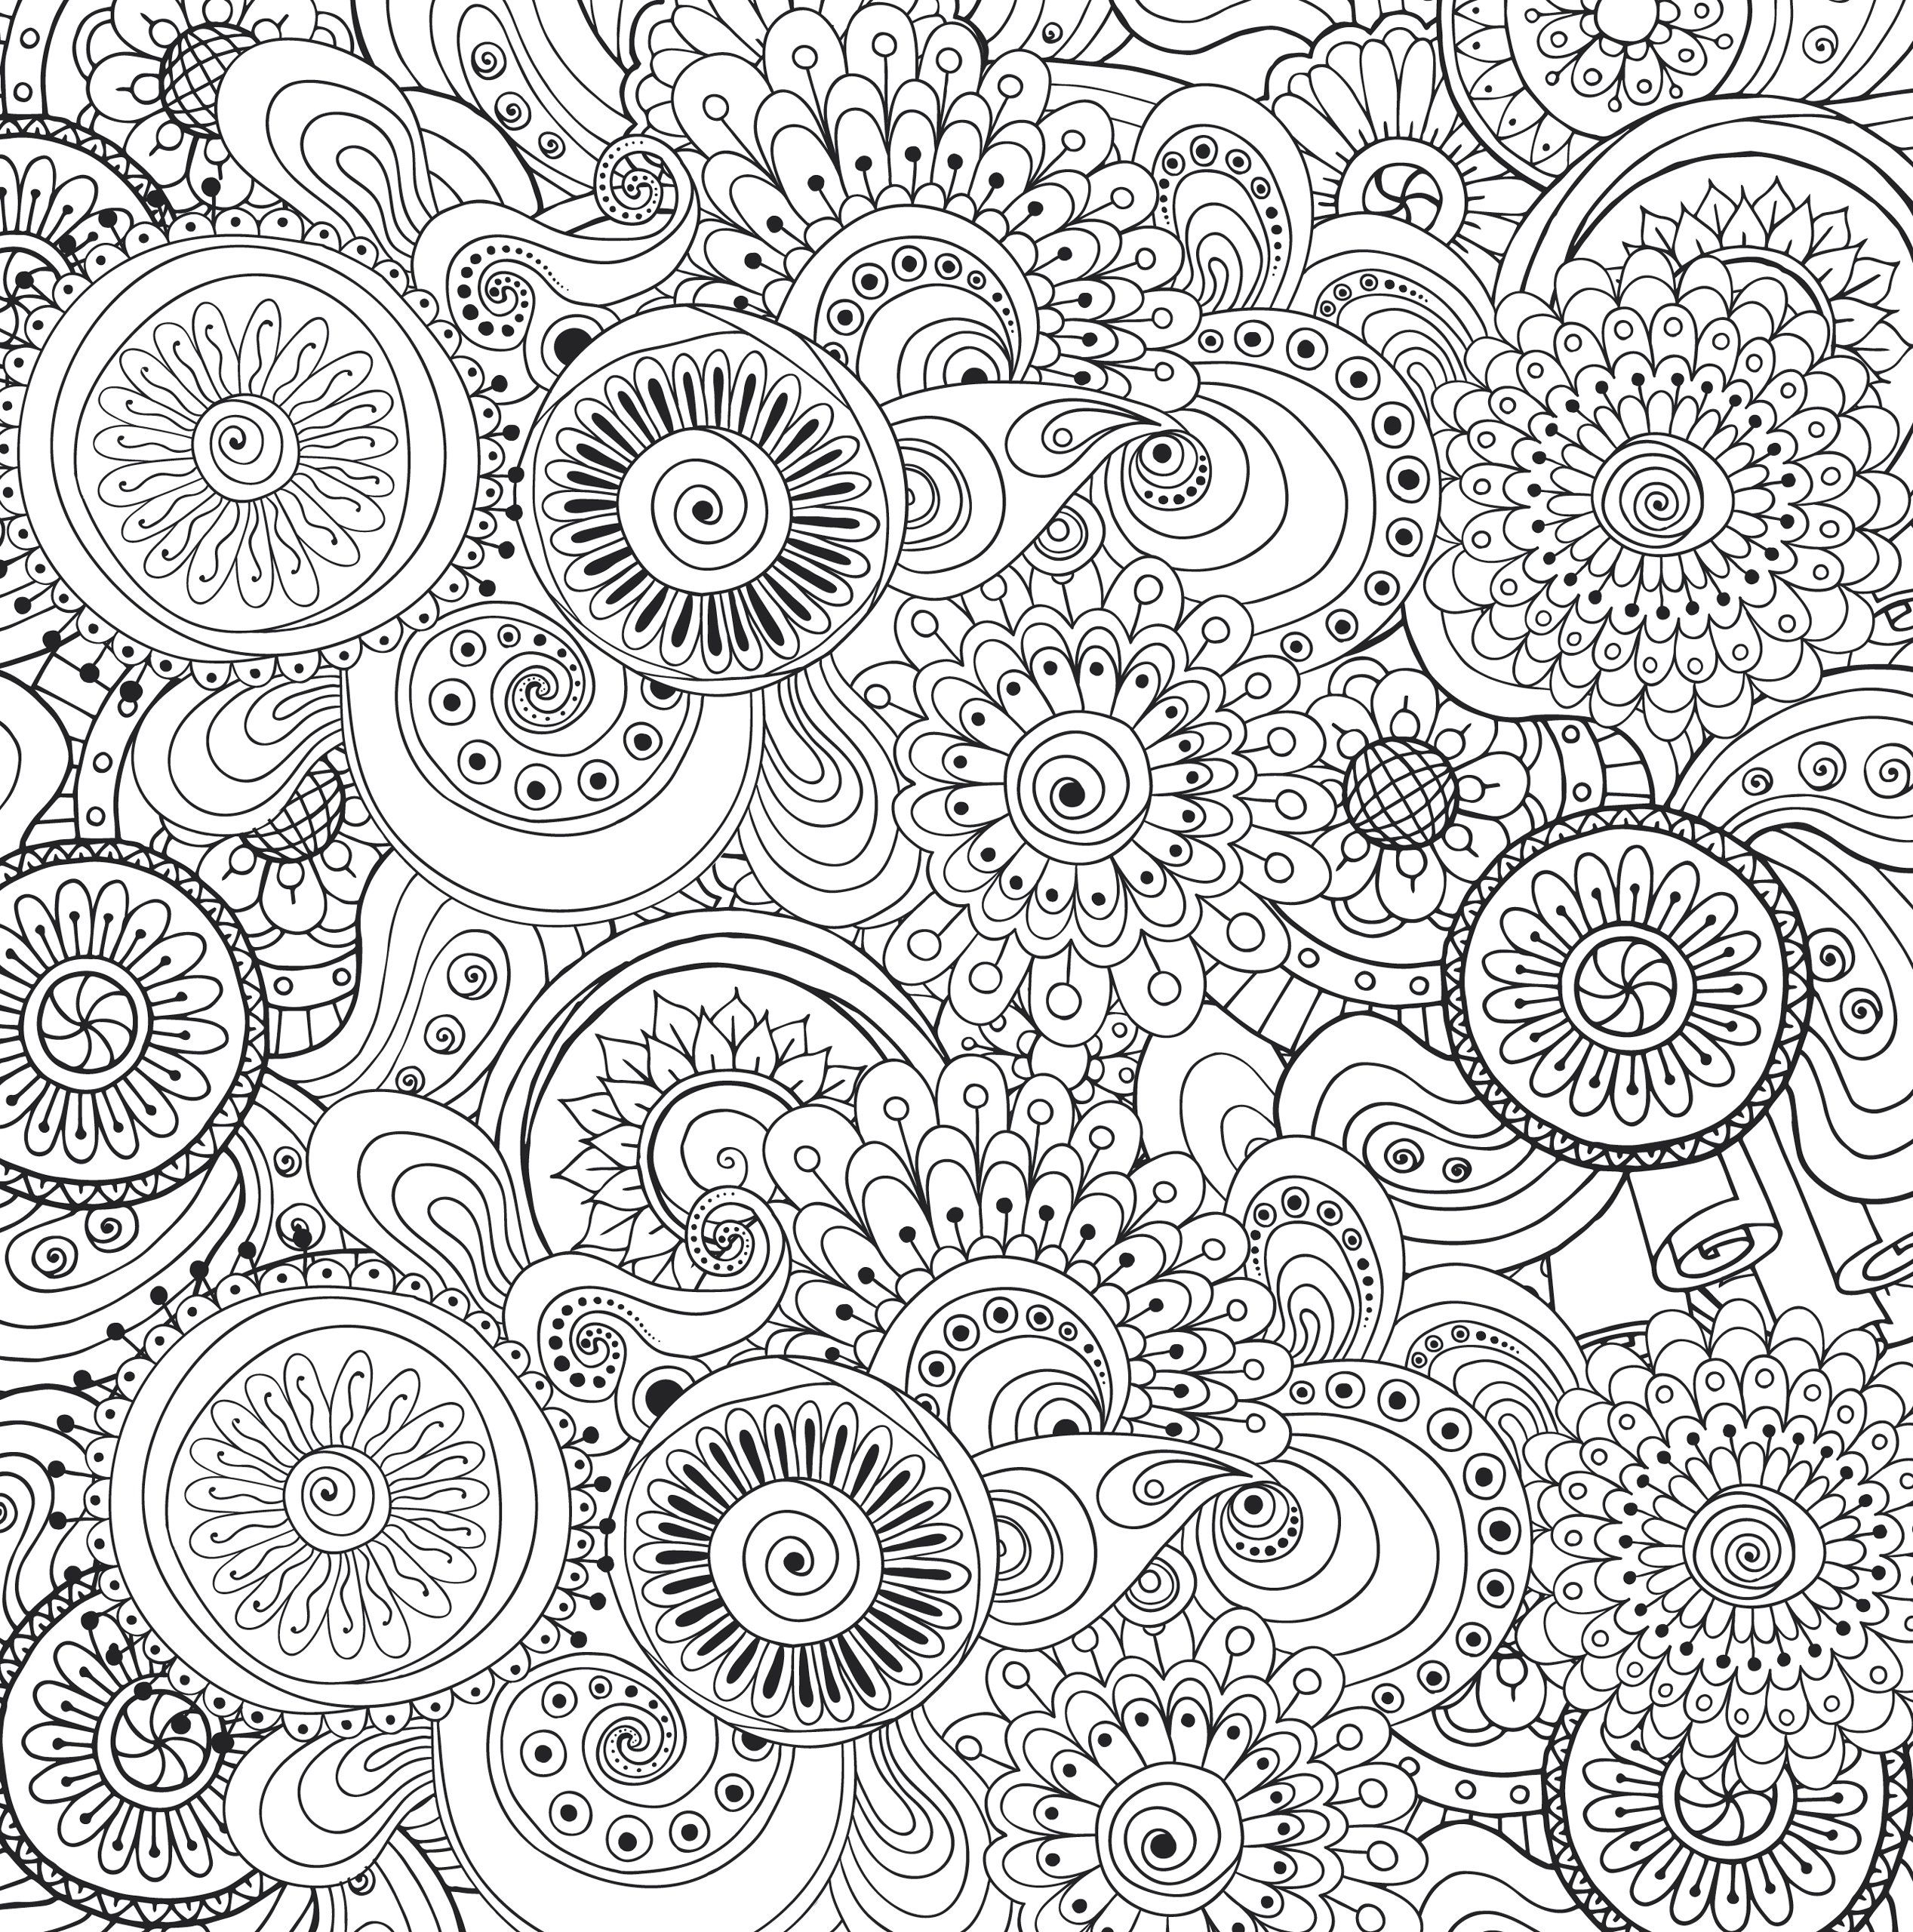 peaceful paisleys adult coloring book 31 stress relieving designs peter pauper press - Adults Coloring Books